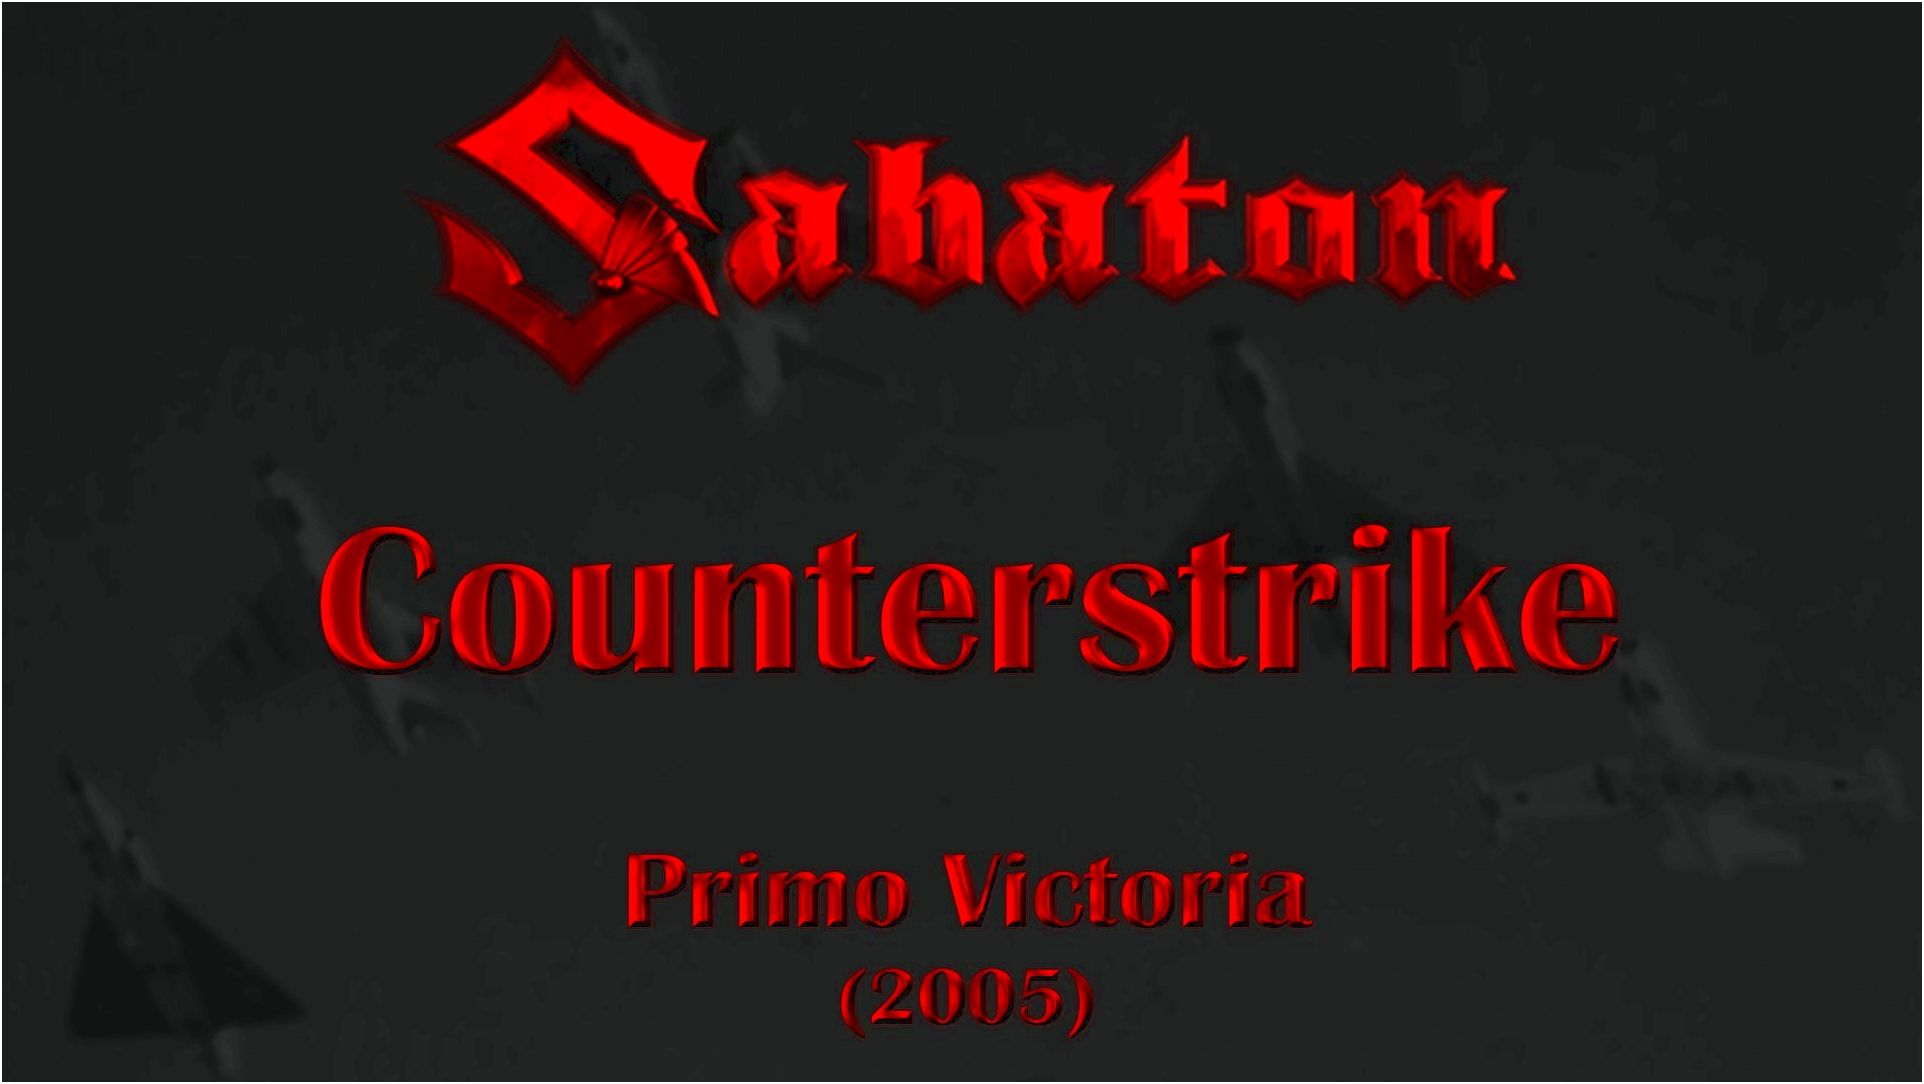 Sabaton – counterstrike lyrics 67 trained them